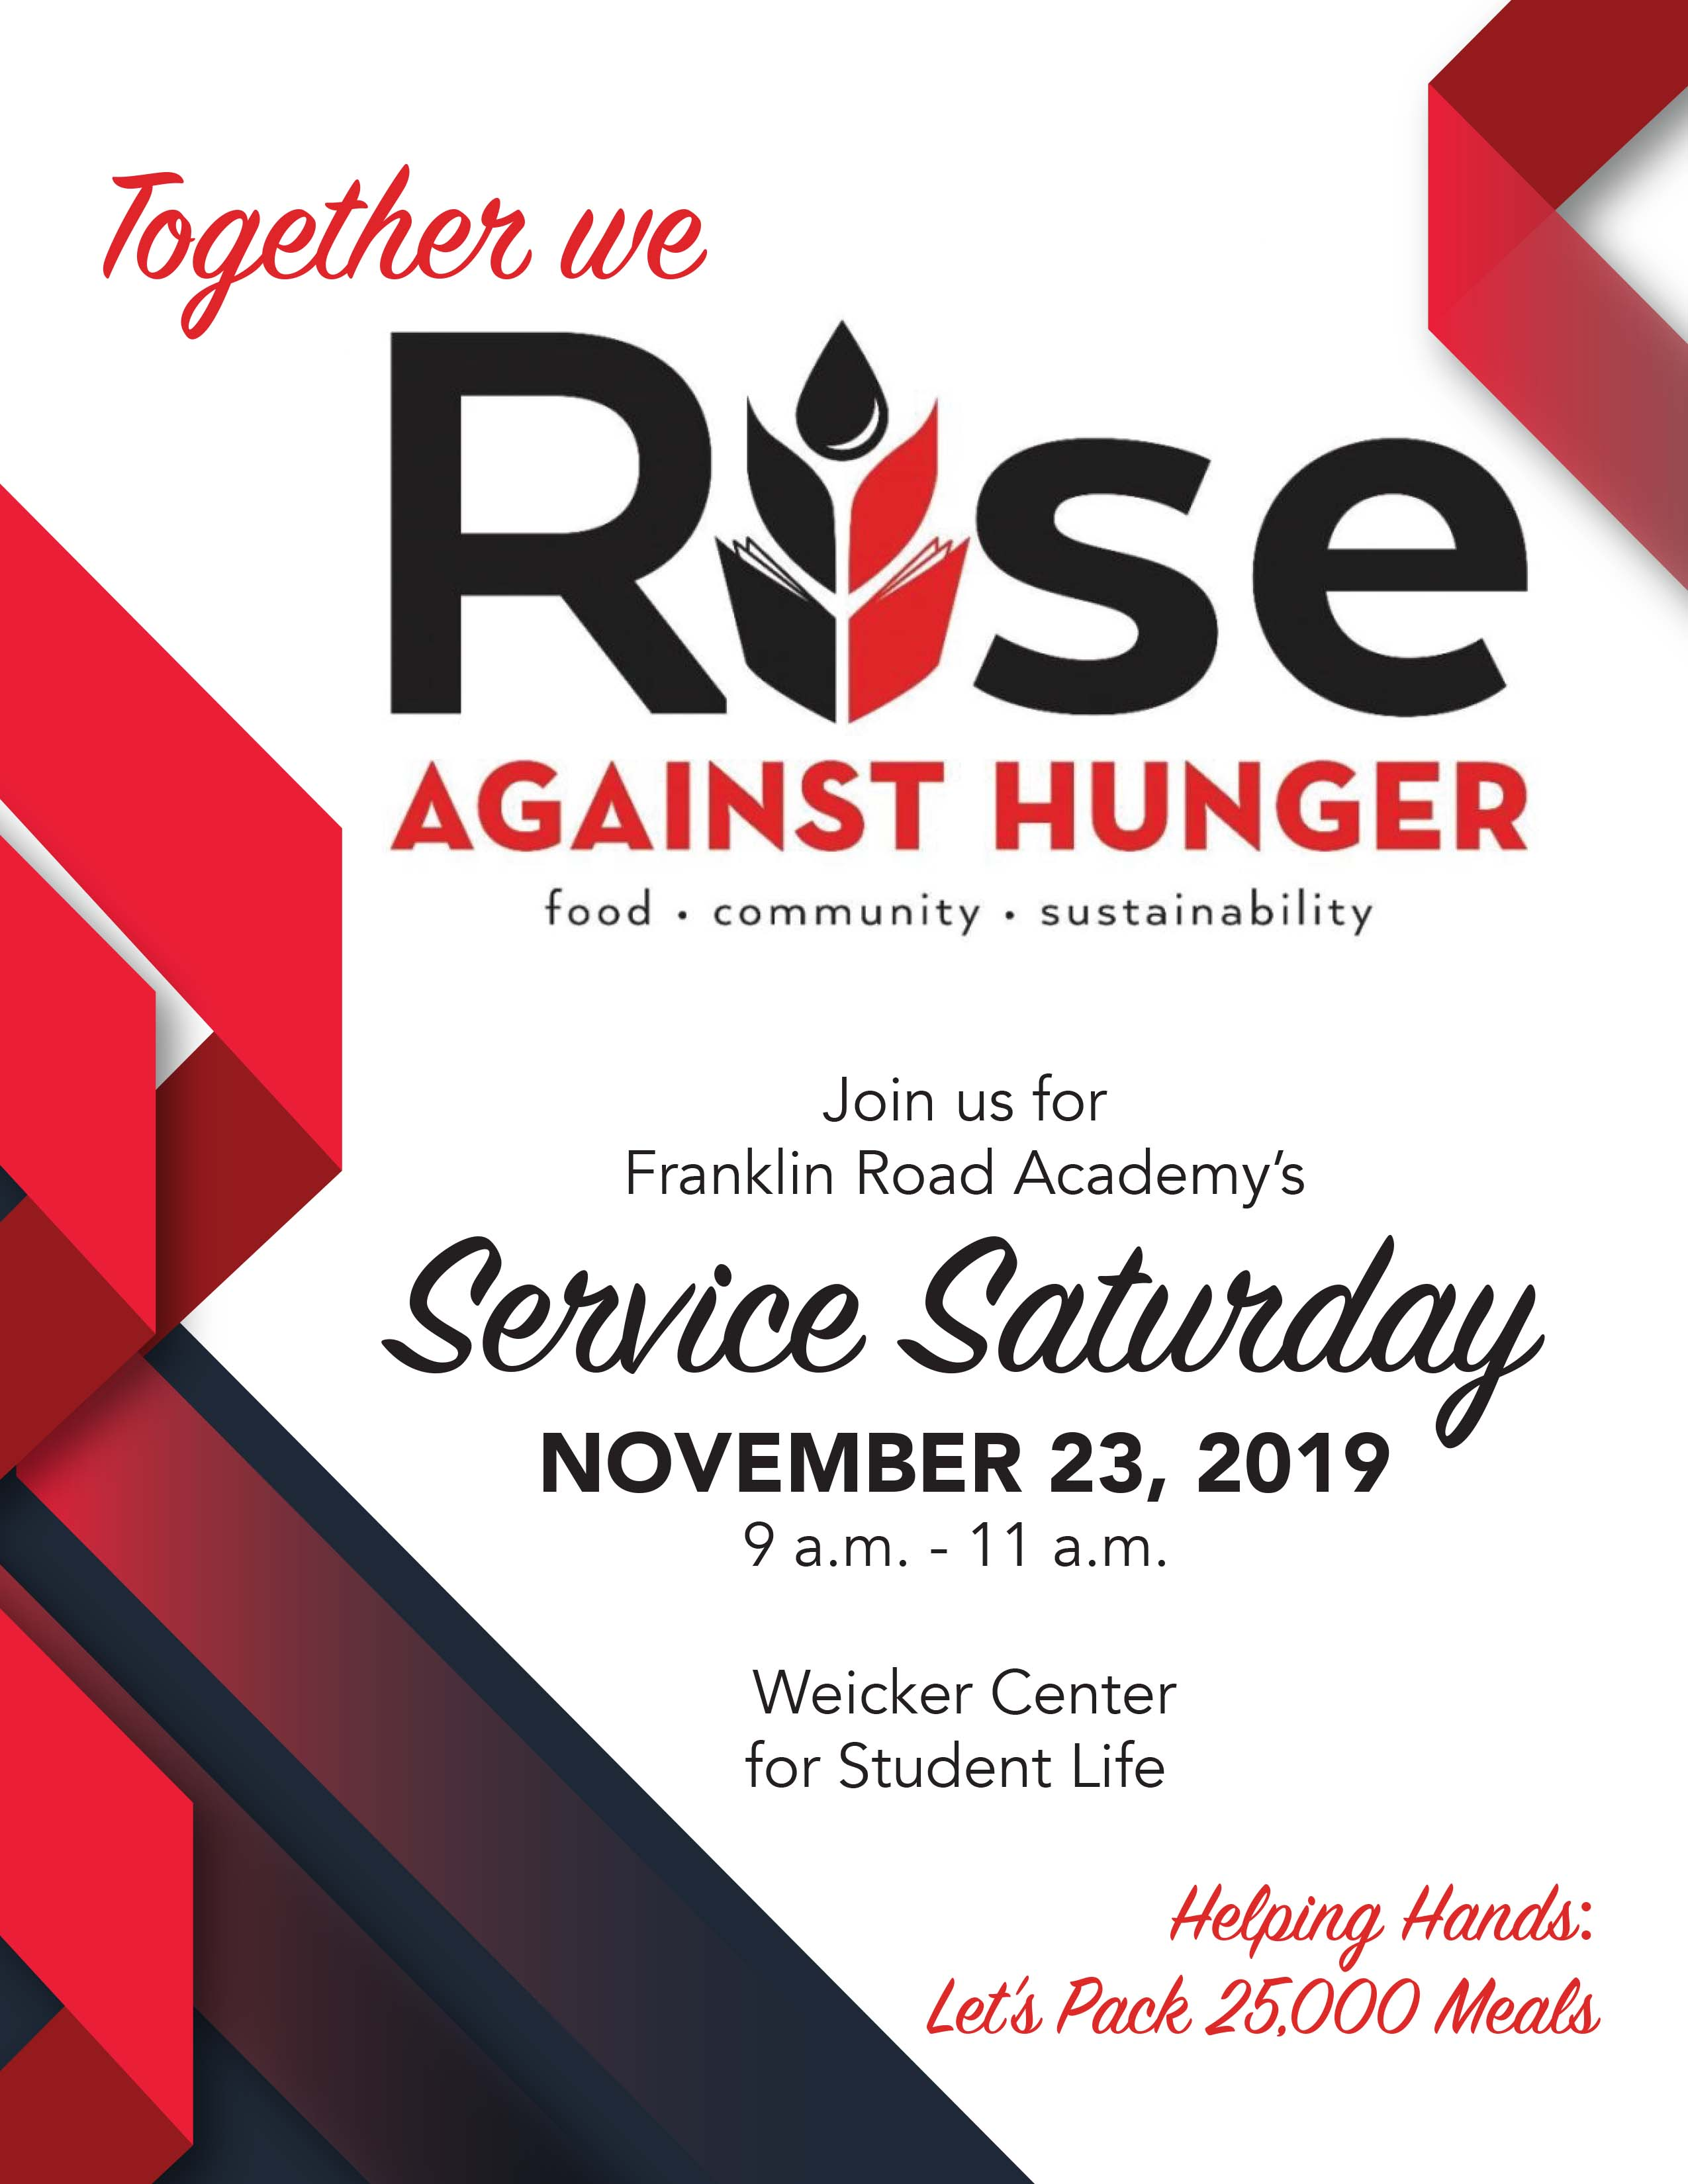 Service Saturday Gives Students a Chance to Help Fight Hunger; 25,000 Meals to be Packed in 2 Hours